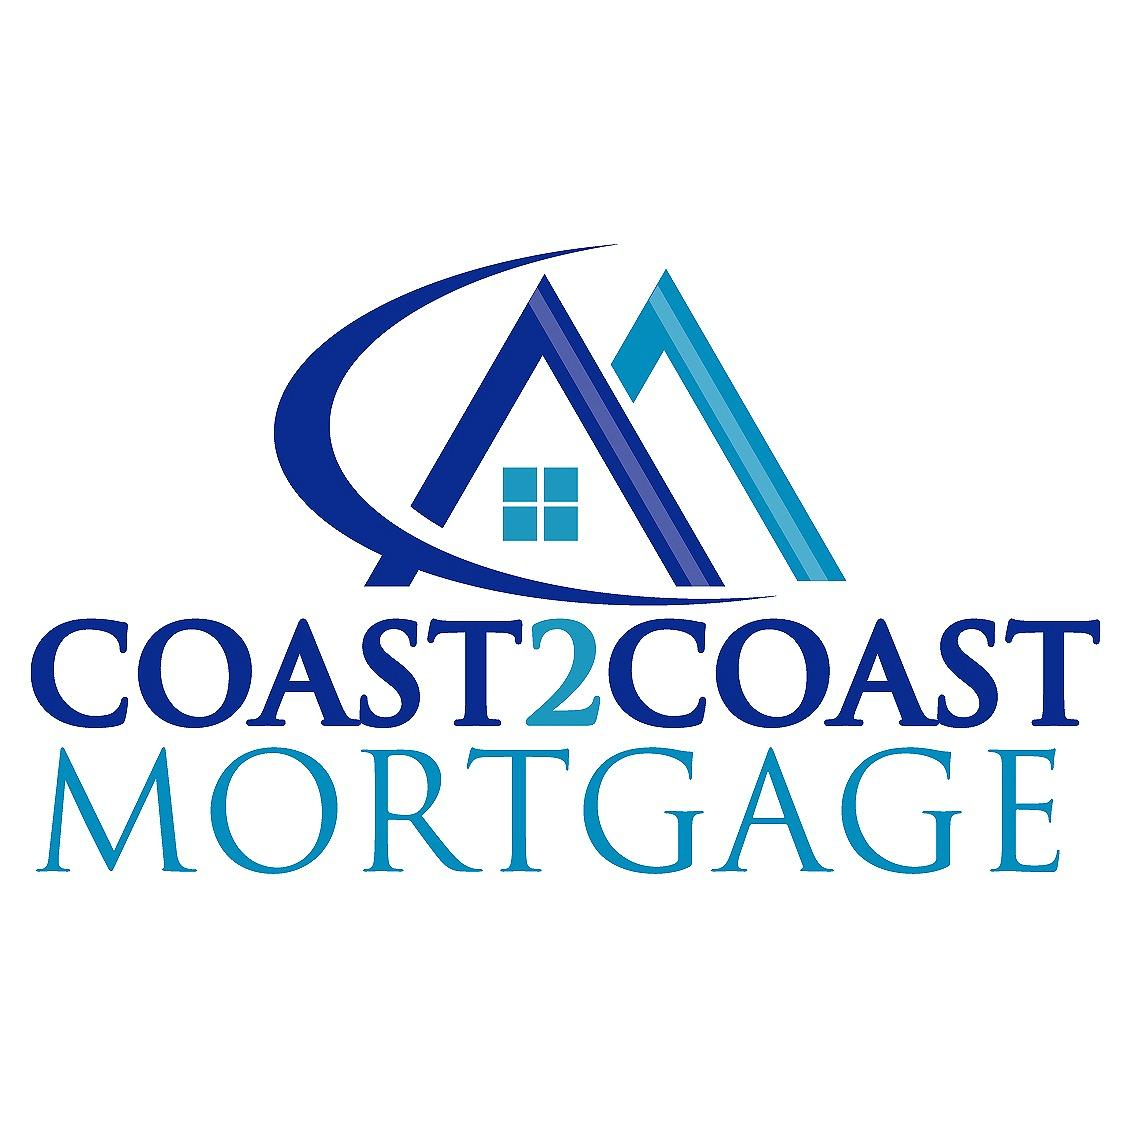 Coast2Coast Mortgage - Hard Money Division